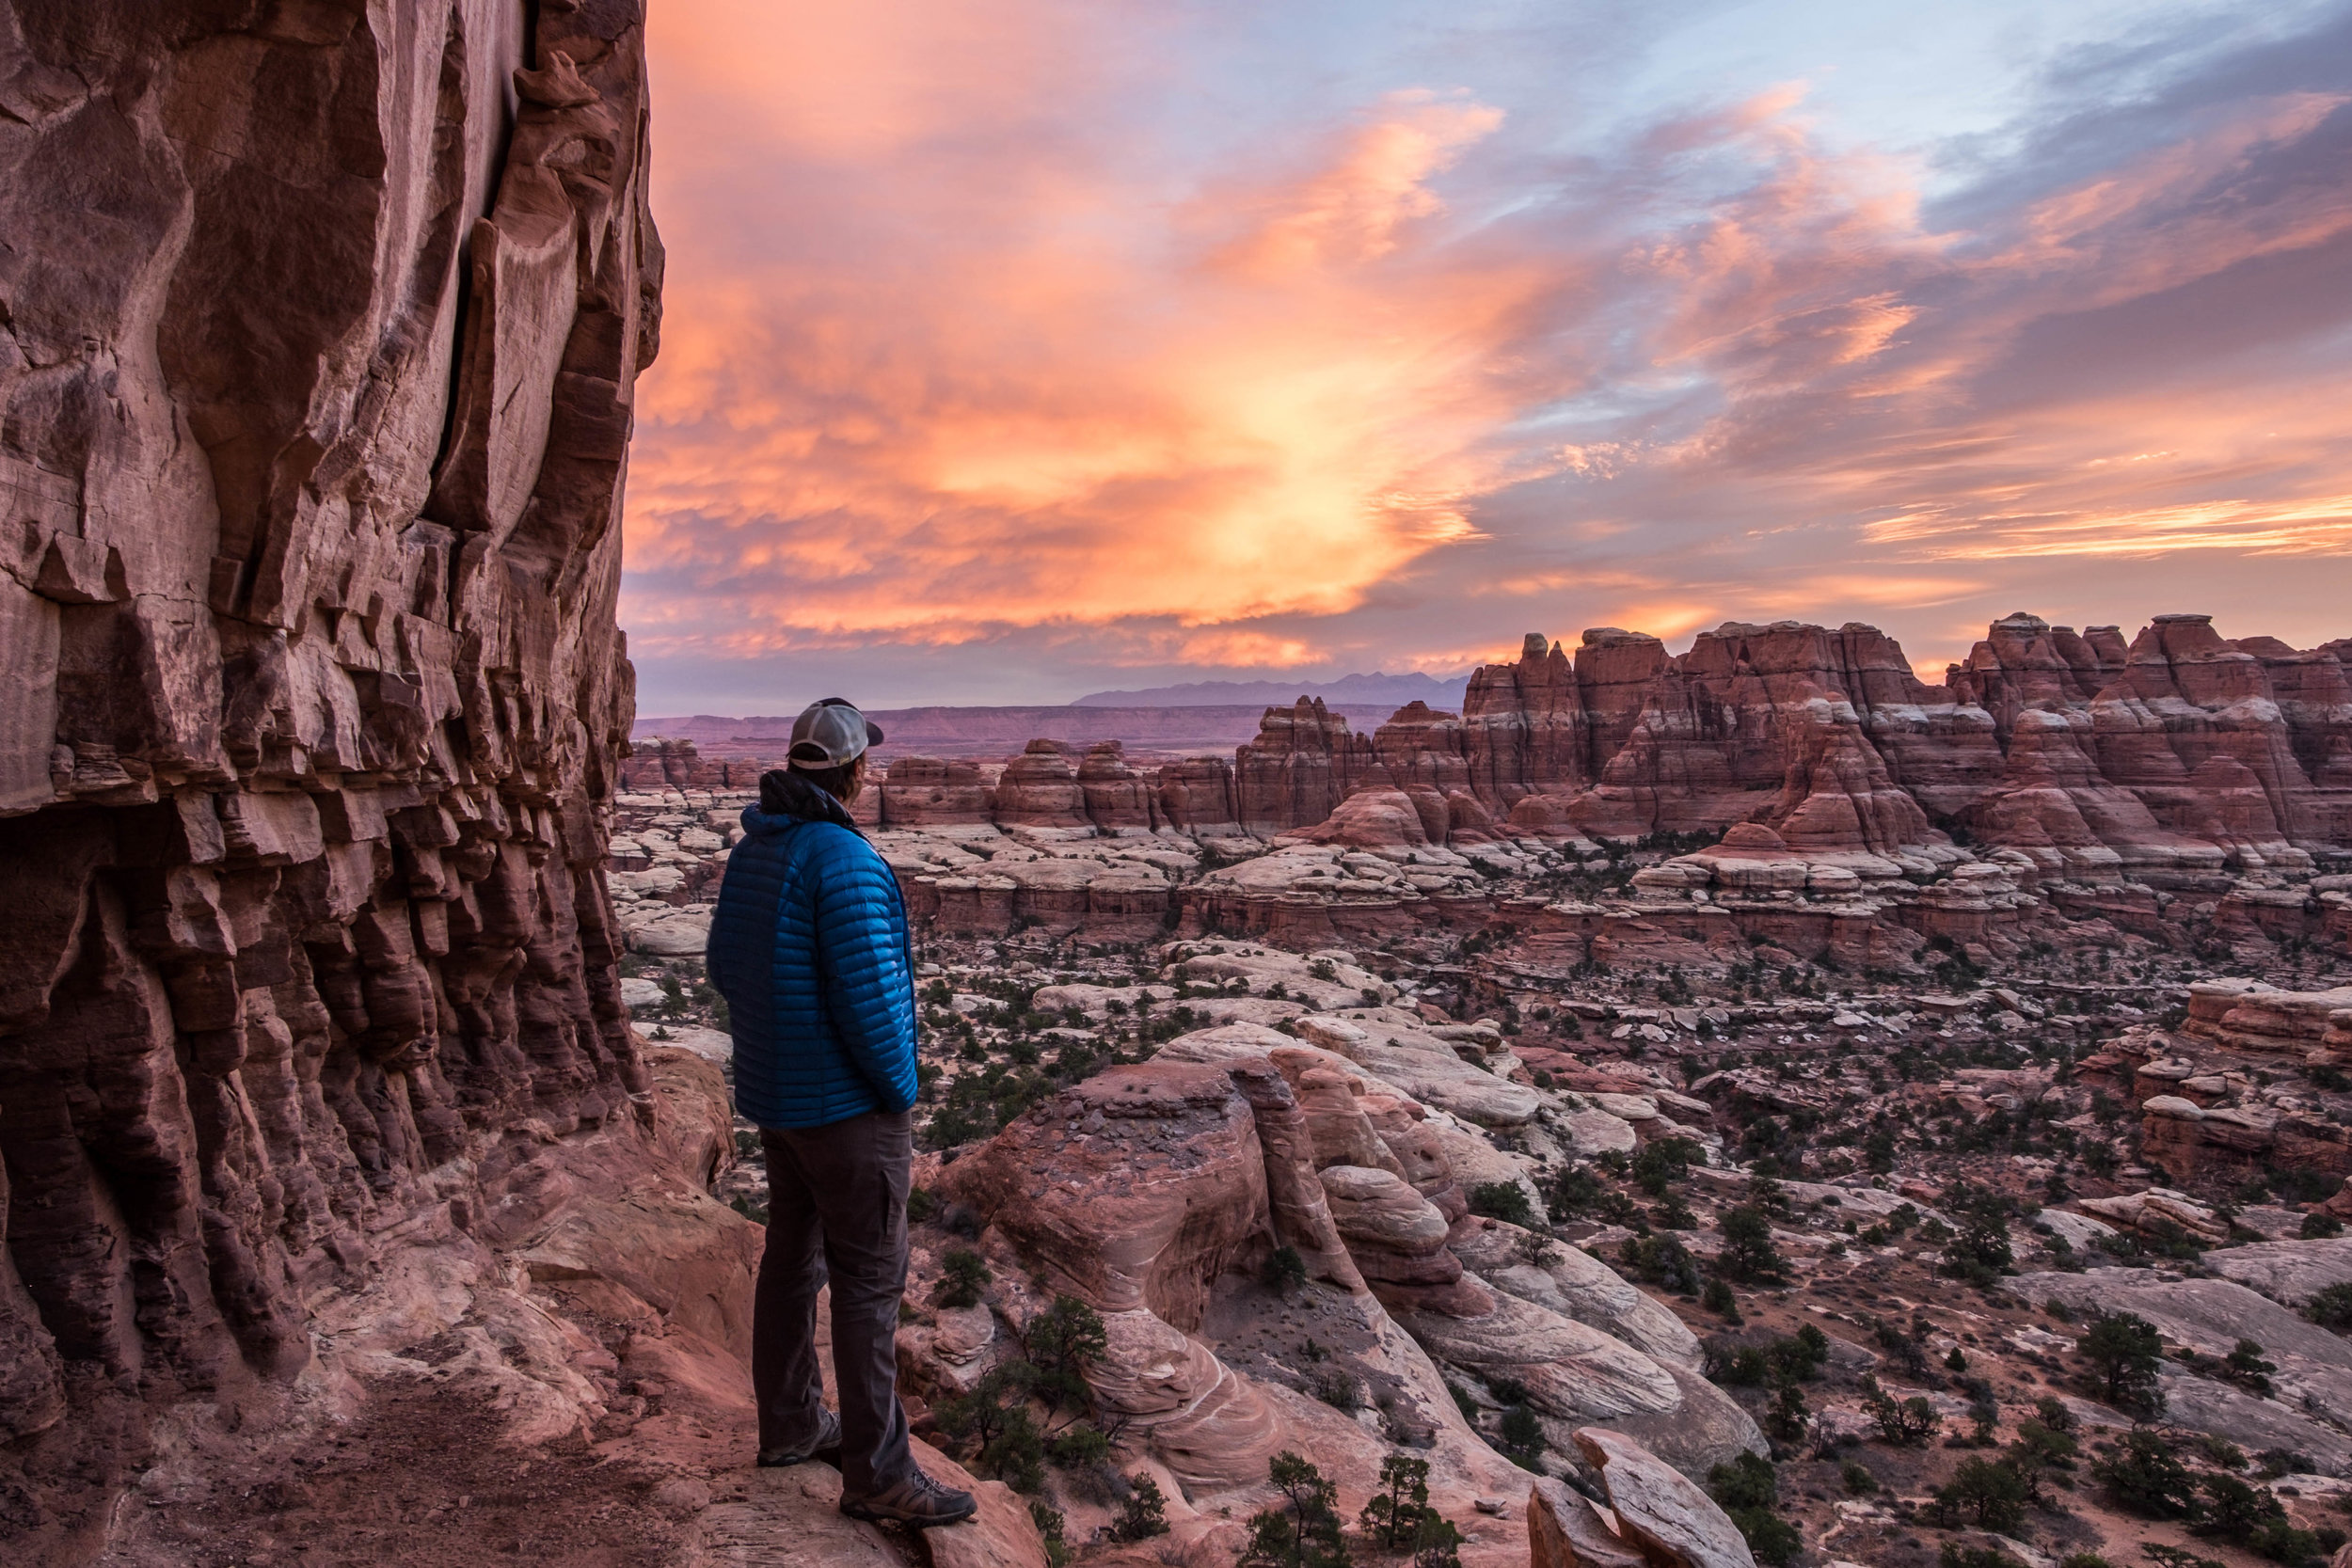 Taking in impeccable views and sunset skies at our campsite in the Chesler Park area of the Needles District.